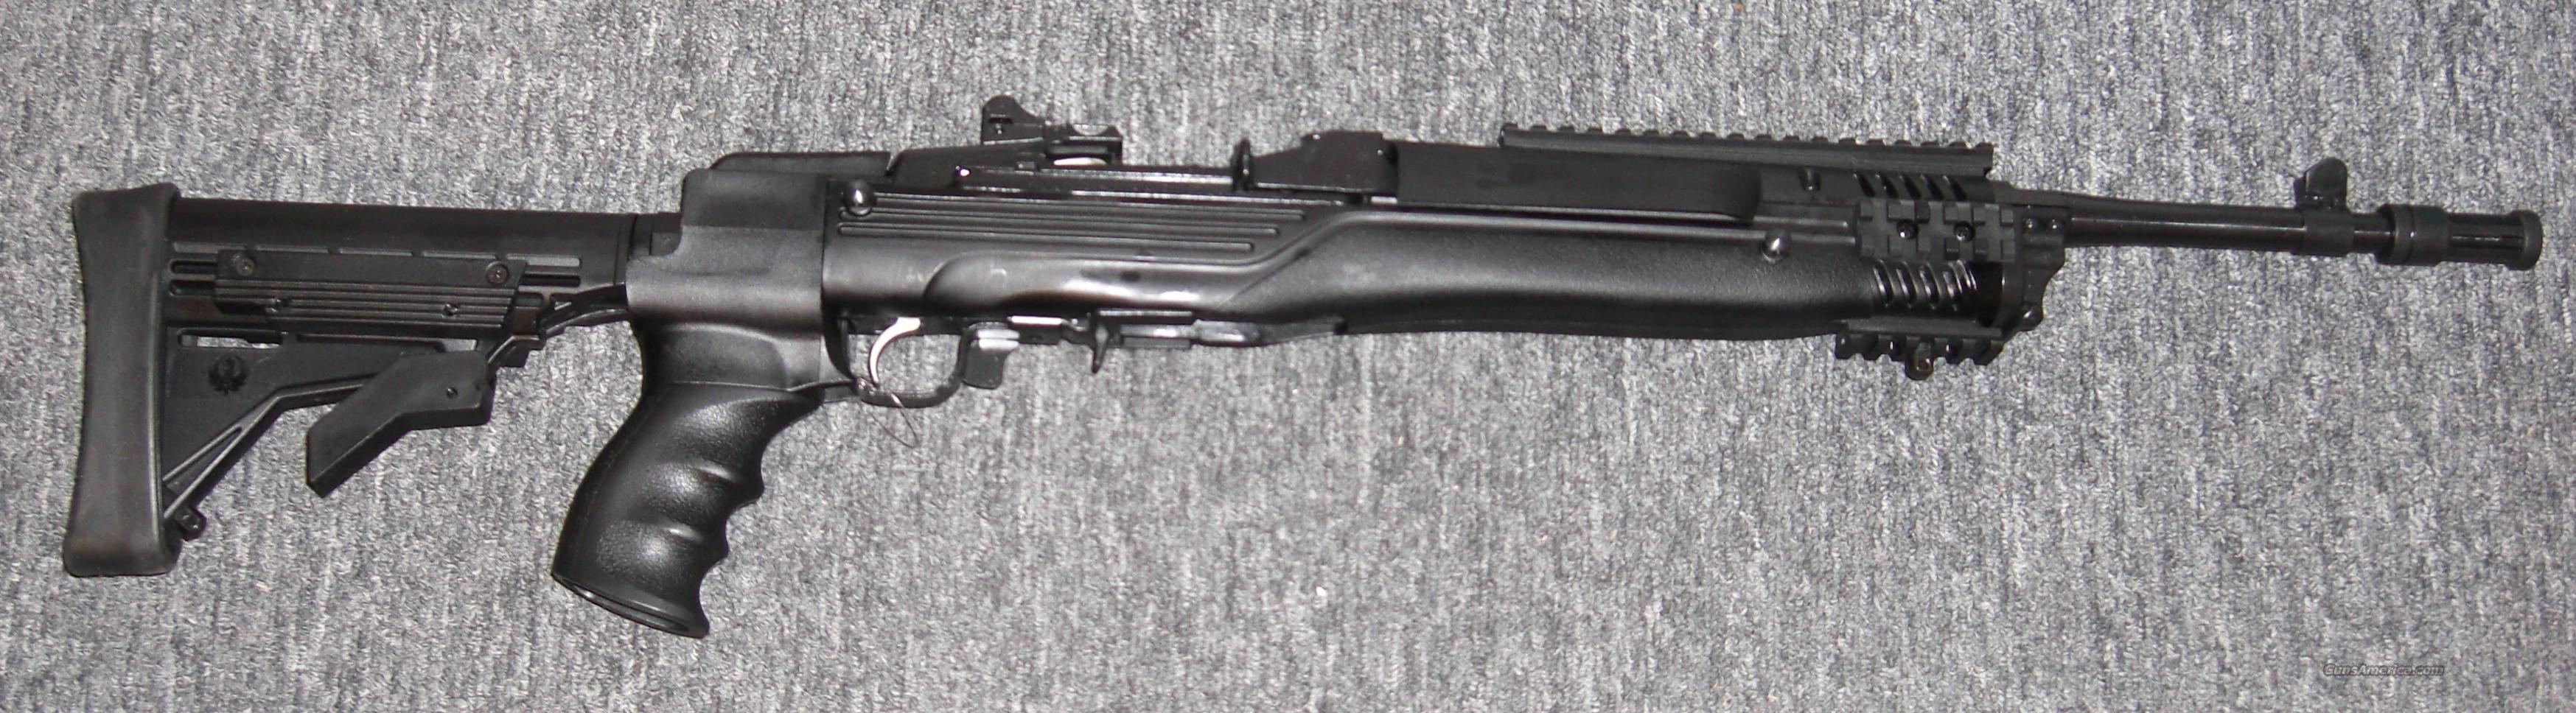 Mini 14 Tactical  w/20 rd. mag.  Guns > Rifles > Ruger Rifles > Mini-14 Type